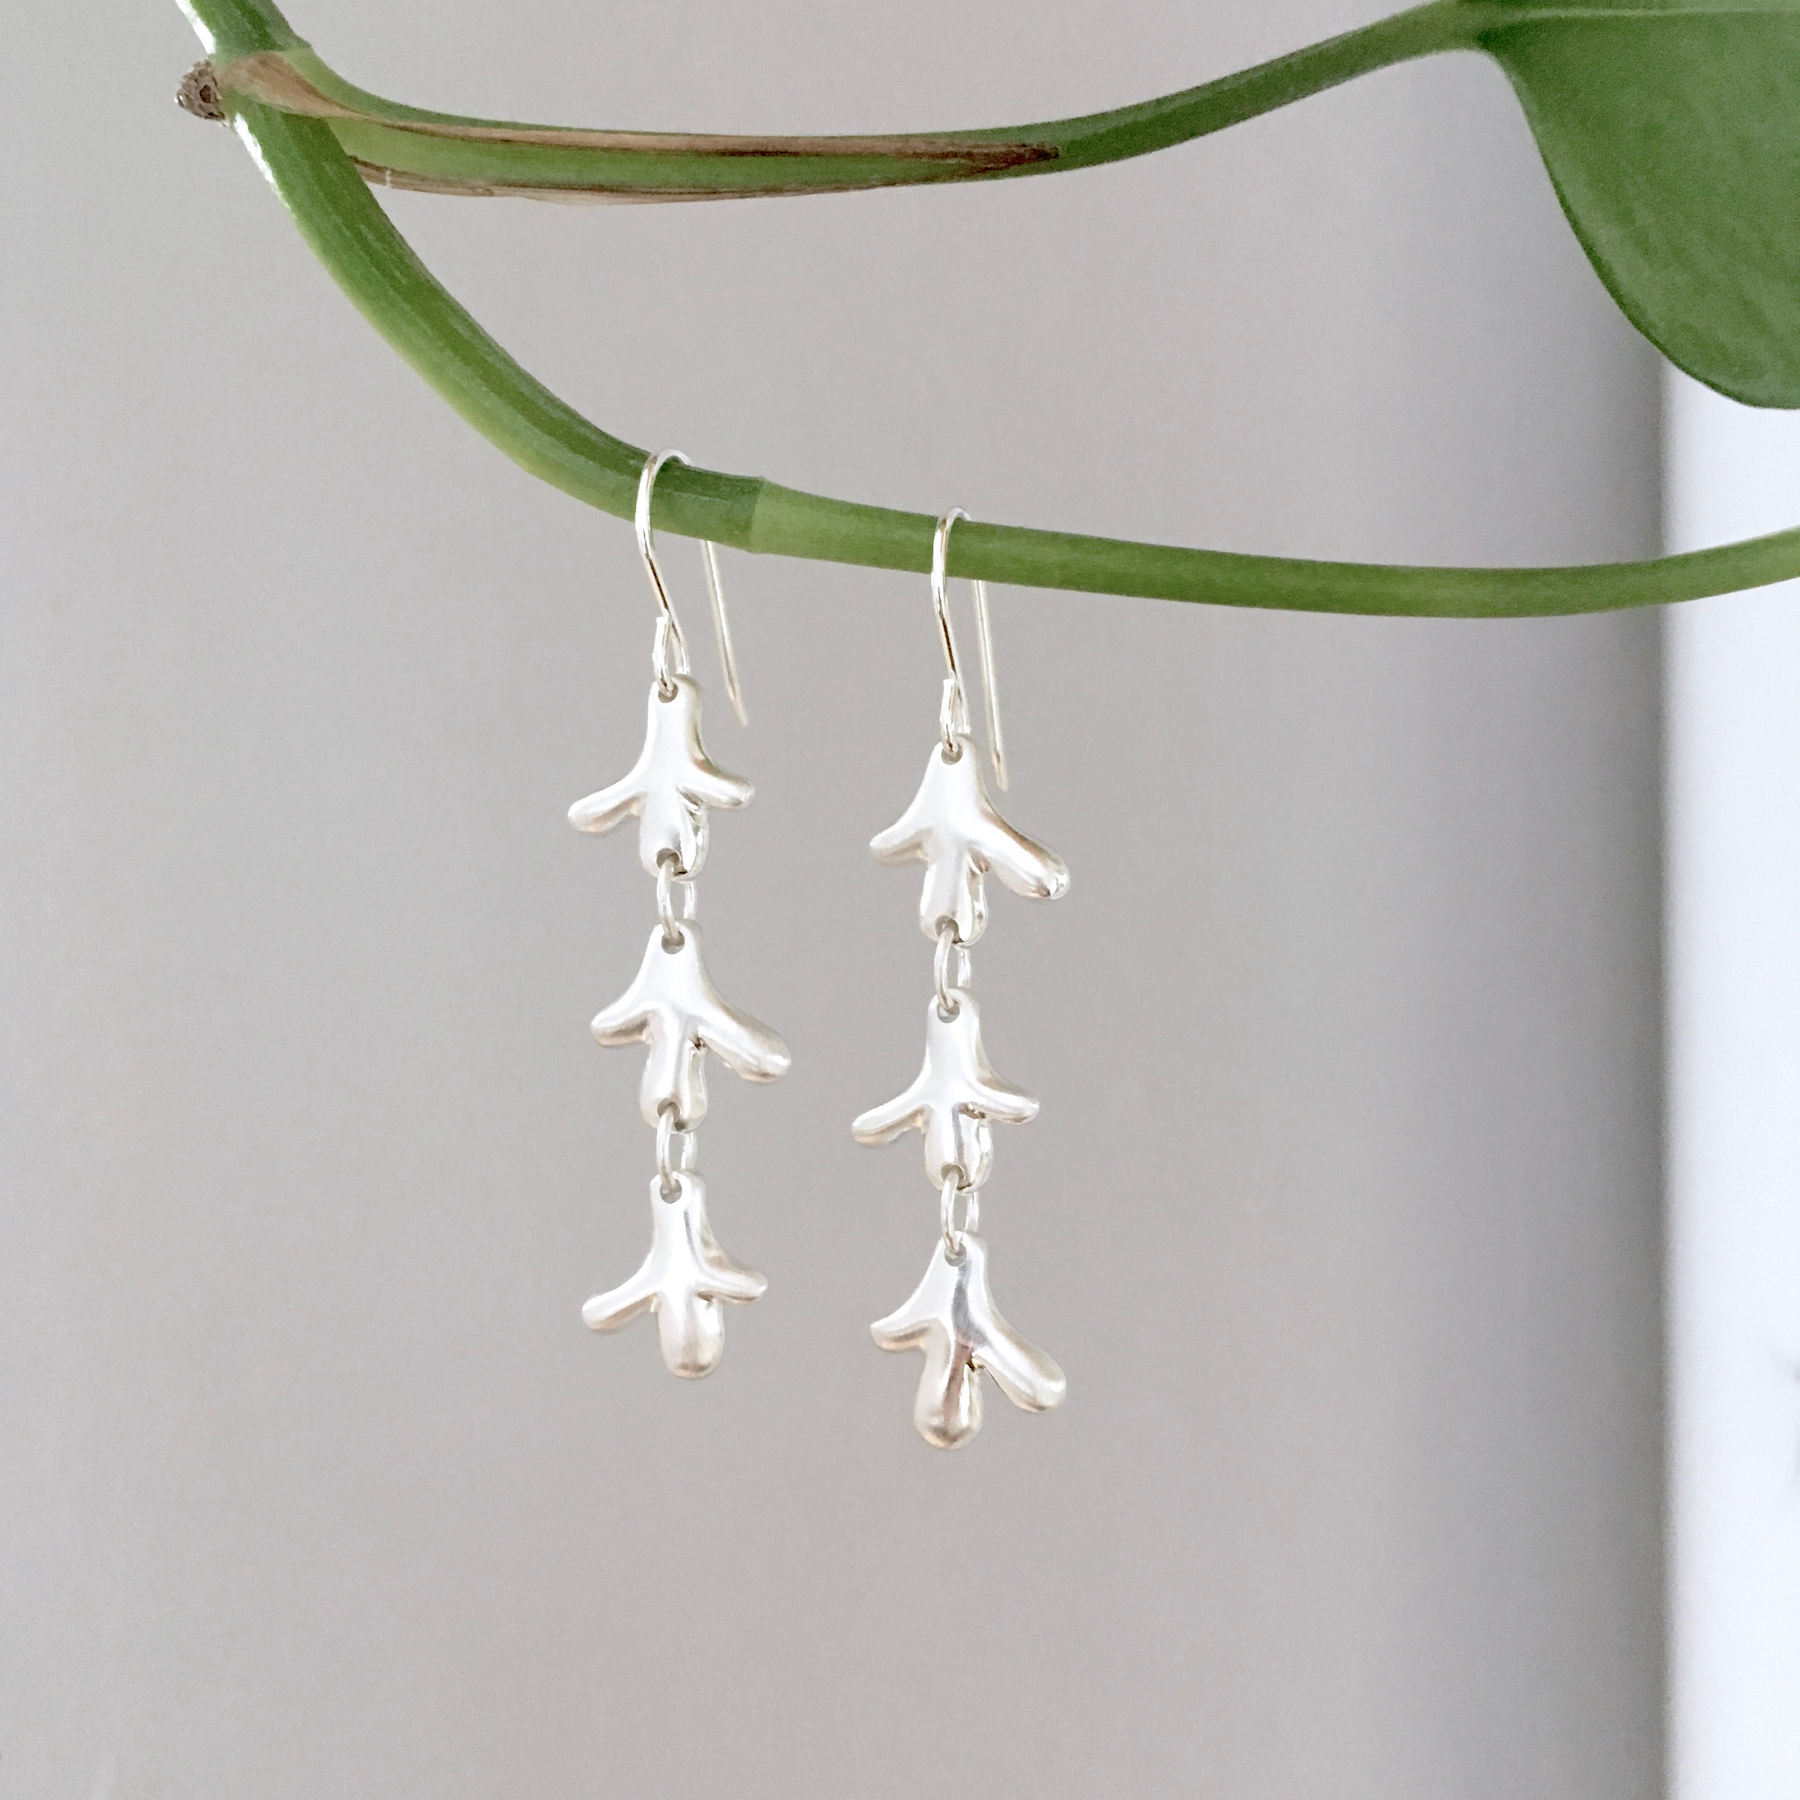 Silver cactus drop earrings by K. Claire MacDonald